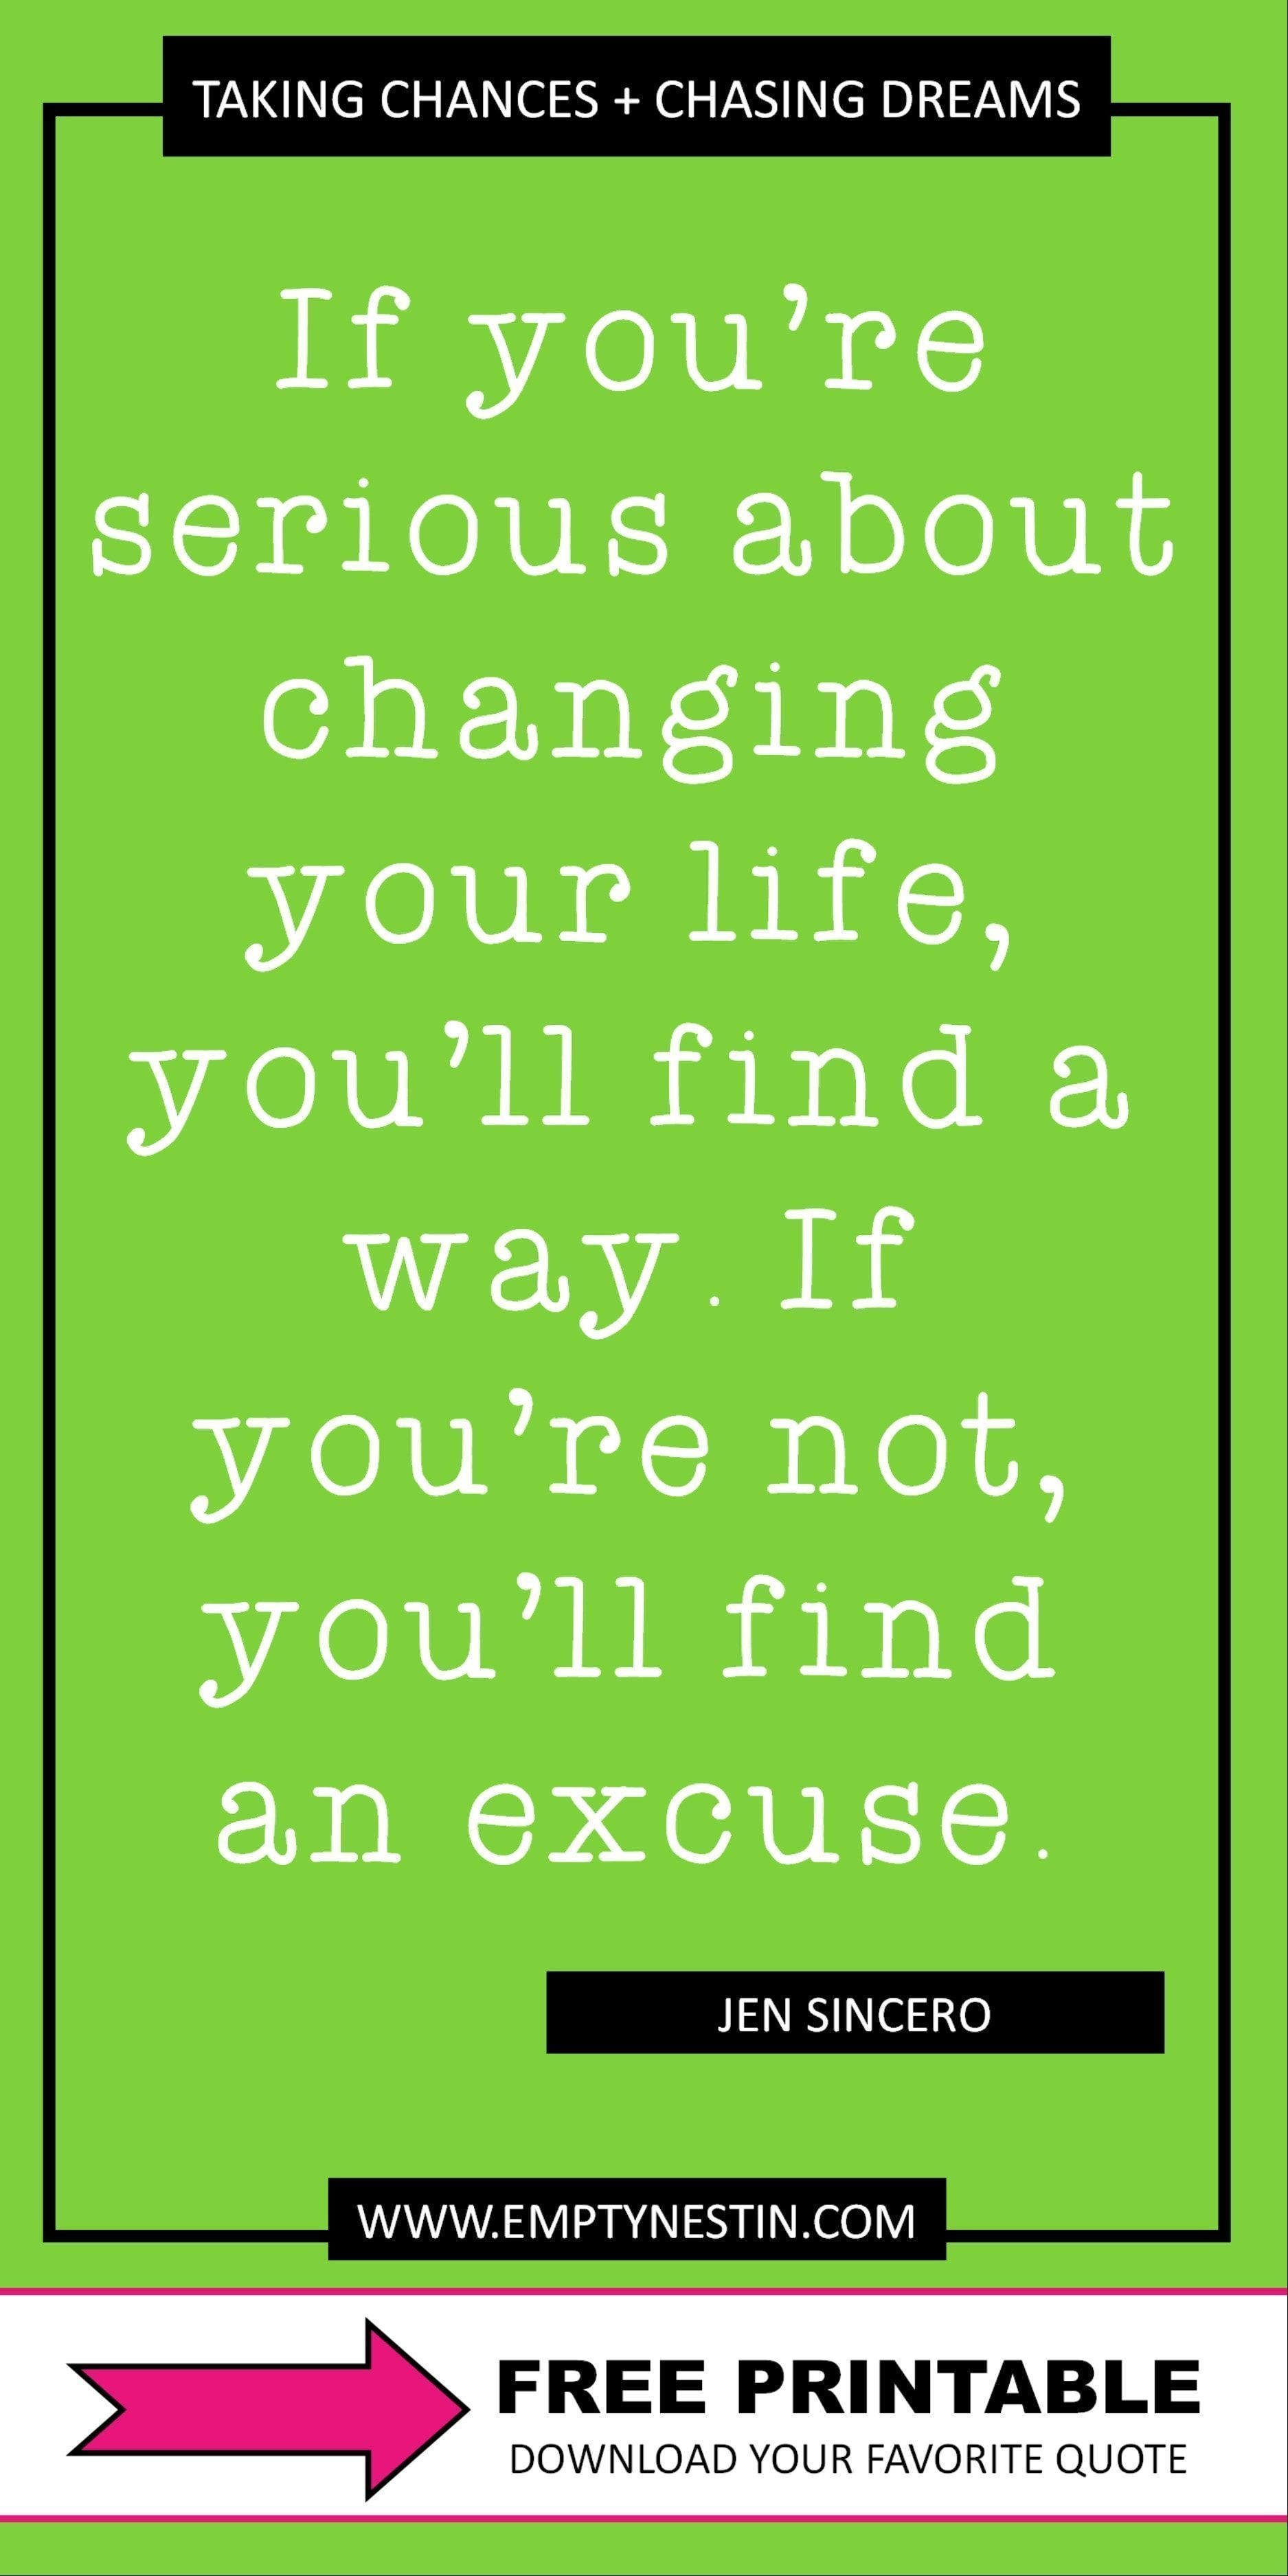 28 Blow Your Mind Quotes About Taking Chances And Chasing Dreams #quotesabouttakingchances Free printable quote collection about taking chances and living dreams.  Find motivation from the most inspirational people out there.  Here's one quote: If you're serious about changing your life, you'll find a way. If you're not, you'll find an excuse. by Jen Sincero #badassquotes #dreambigger #dreambigprincess #workhard #takechances #chasedreams #quotesabouttakingchances 28 Blow Your Mind Quotes #quotesabouttakingchances